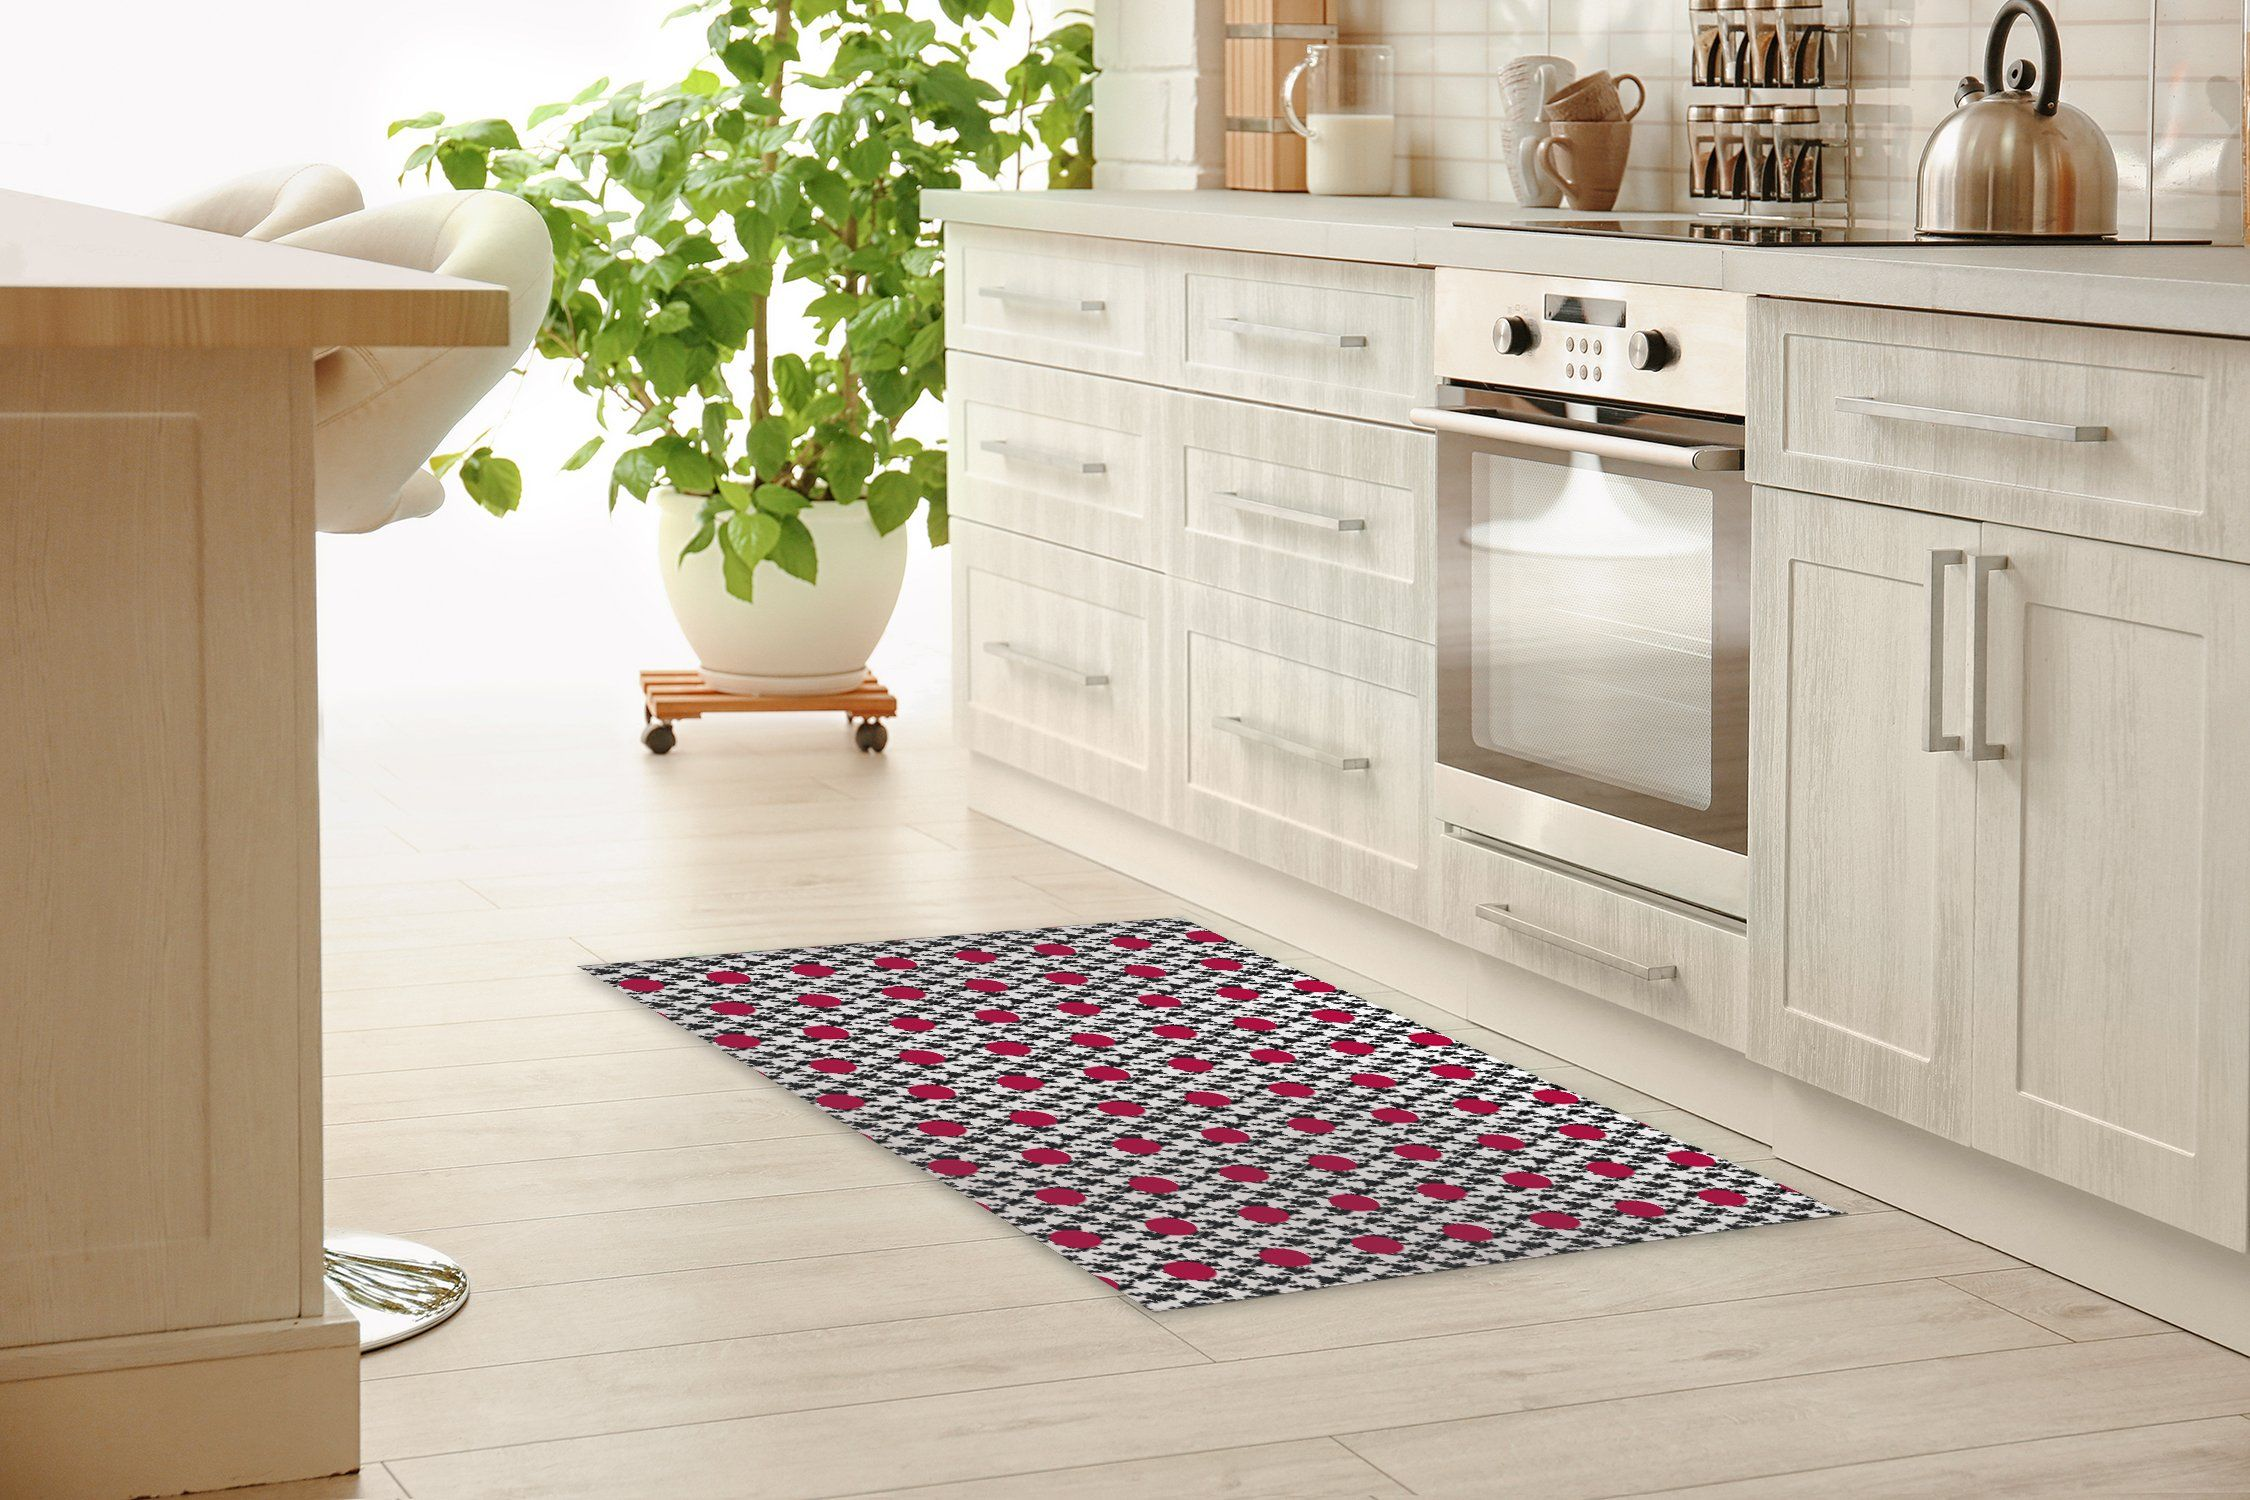 HARRIS BLACK AND RED Kitchen Mat By Becky Bailey - 2ft x 3ft